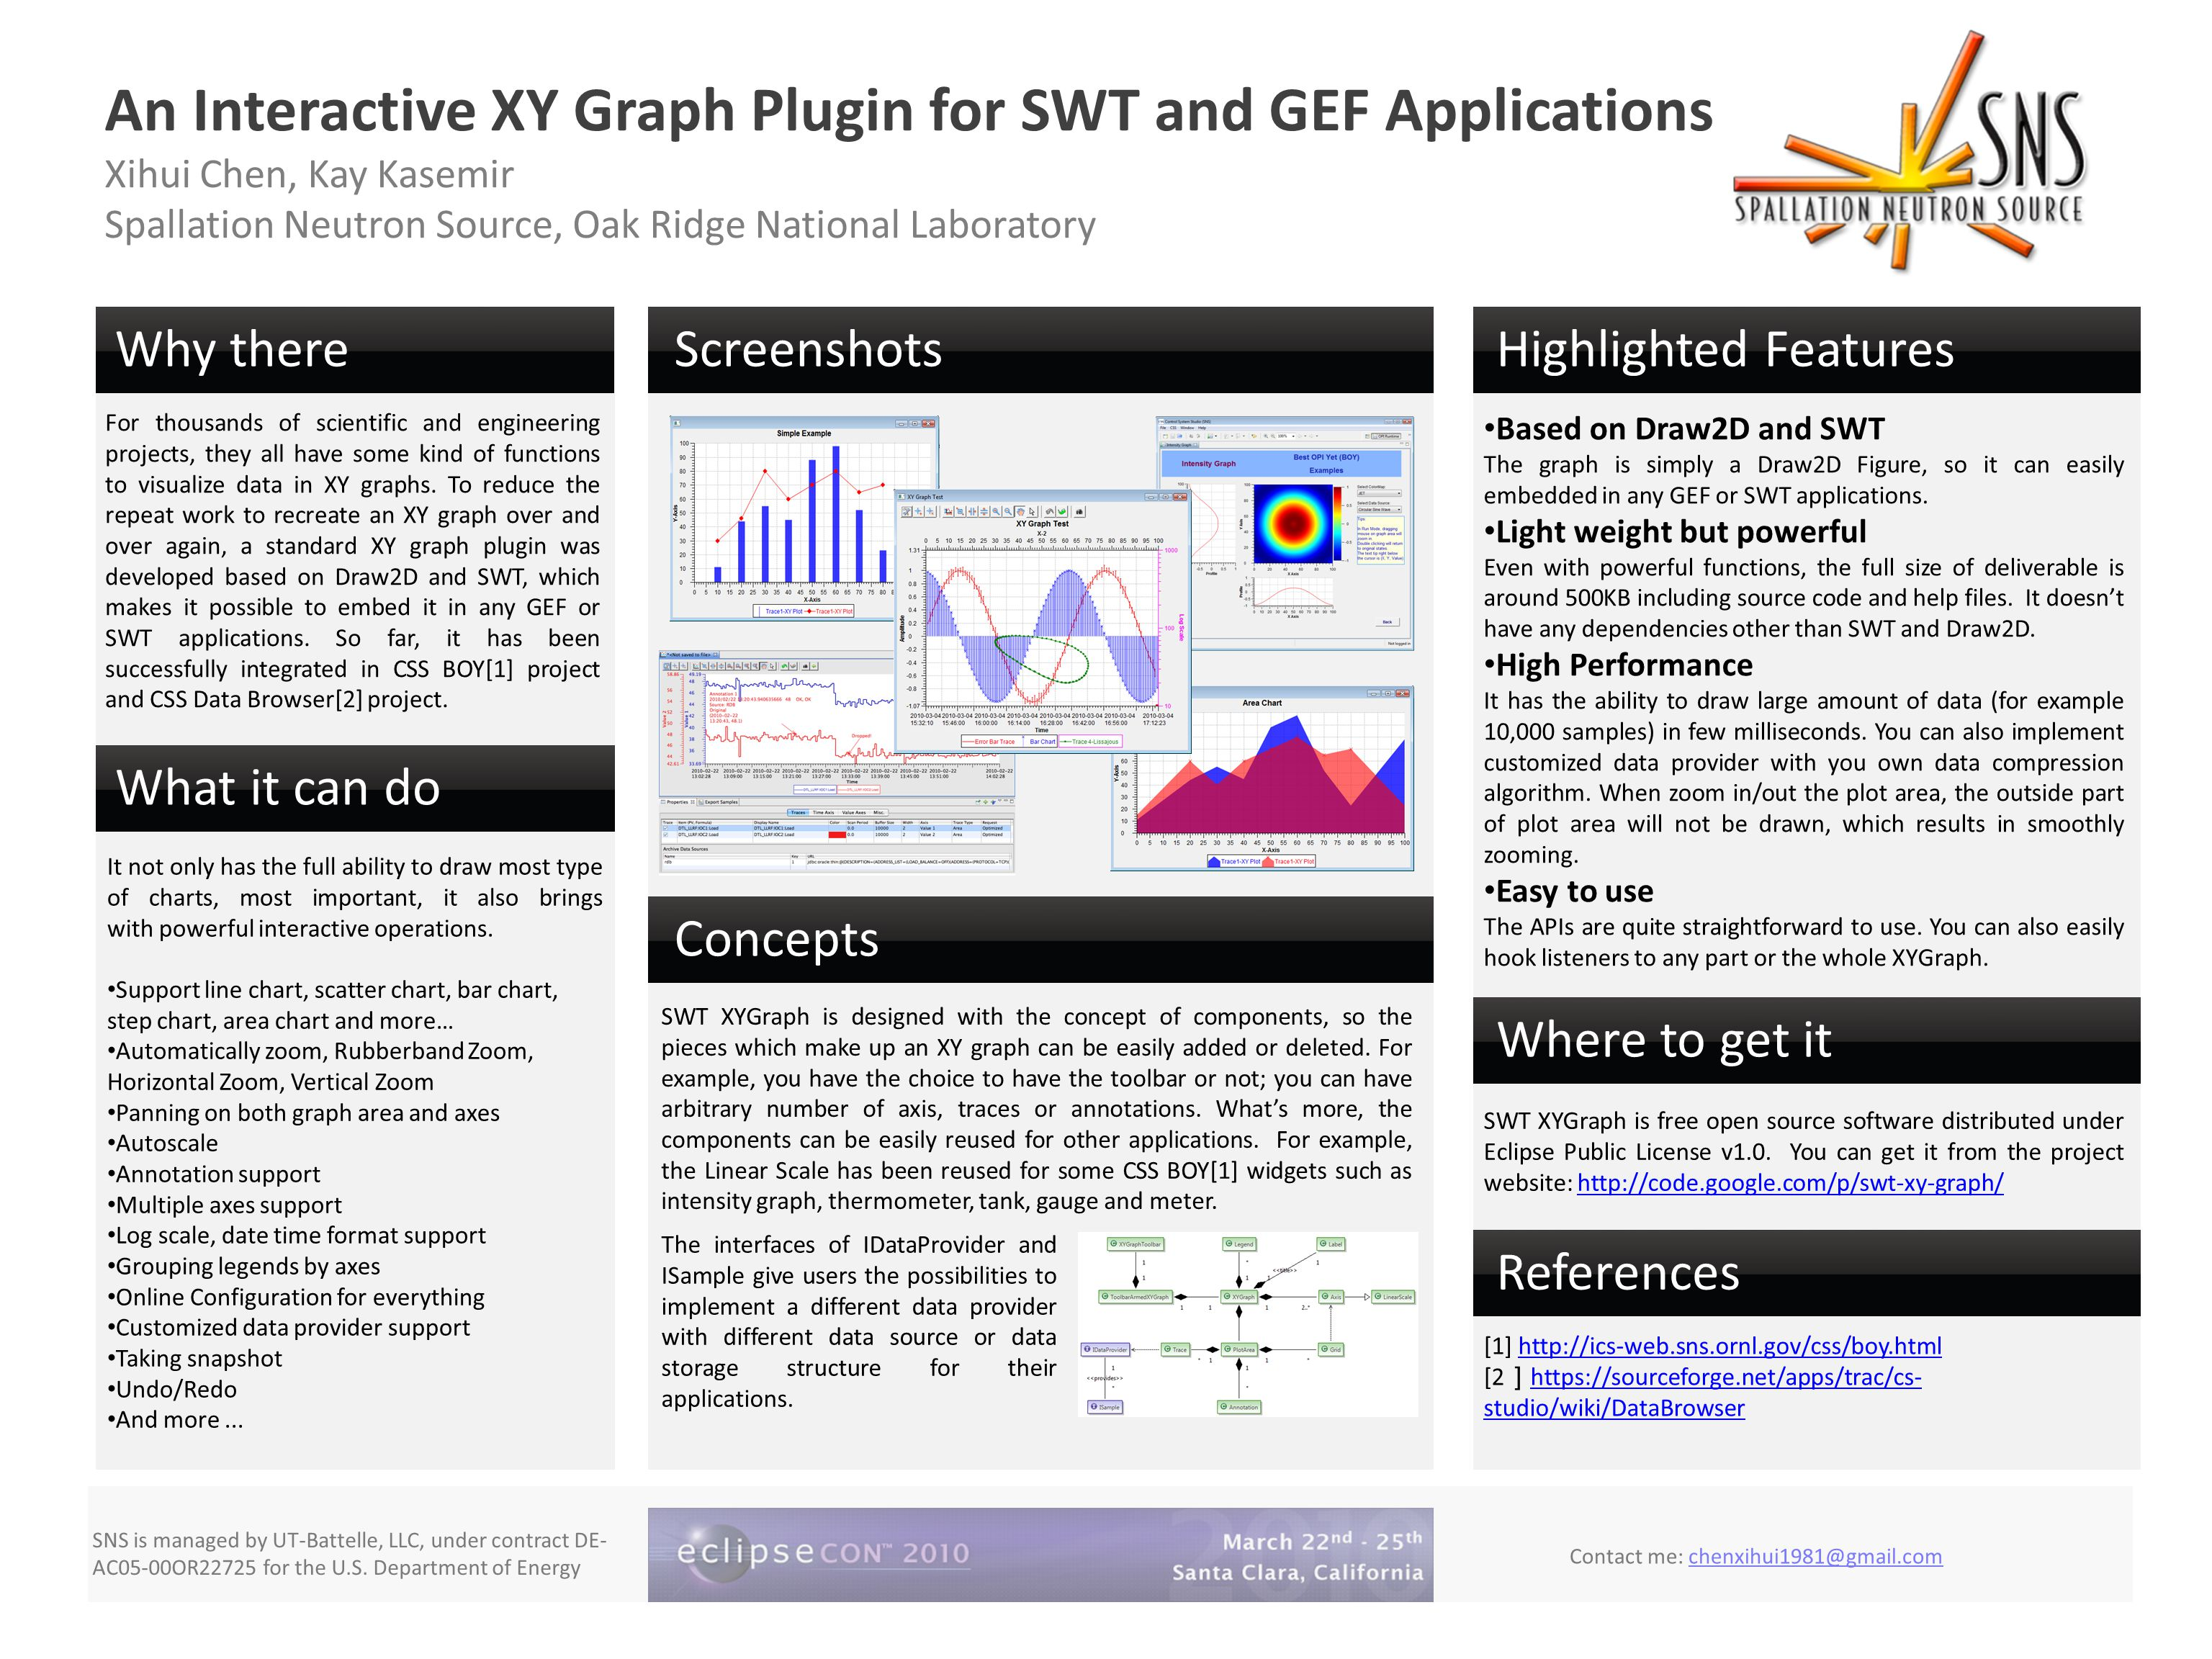 An Interactive XY Graph Plugin for SWT and GEF Applications Xihui Chen, Kay Kasemir Spallation Neutron Source, Oak Ridge National Laboratory Why there